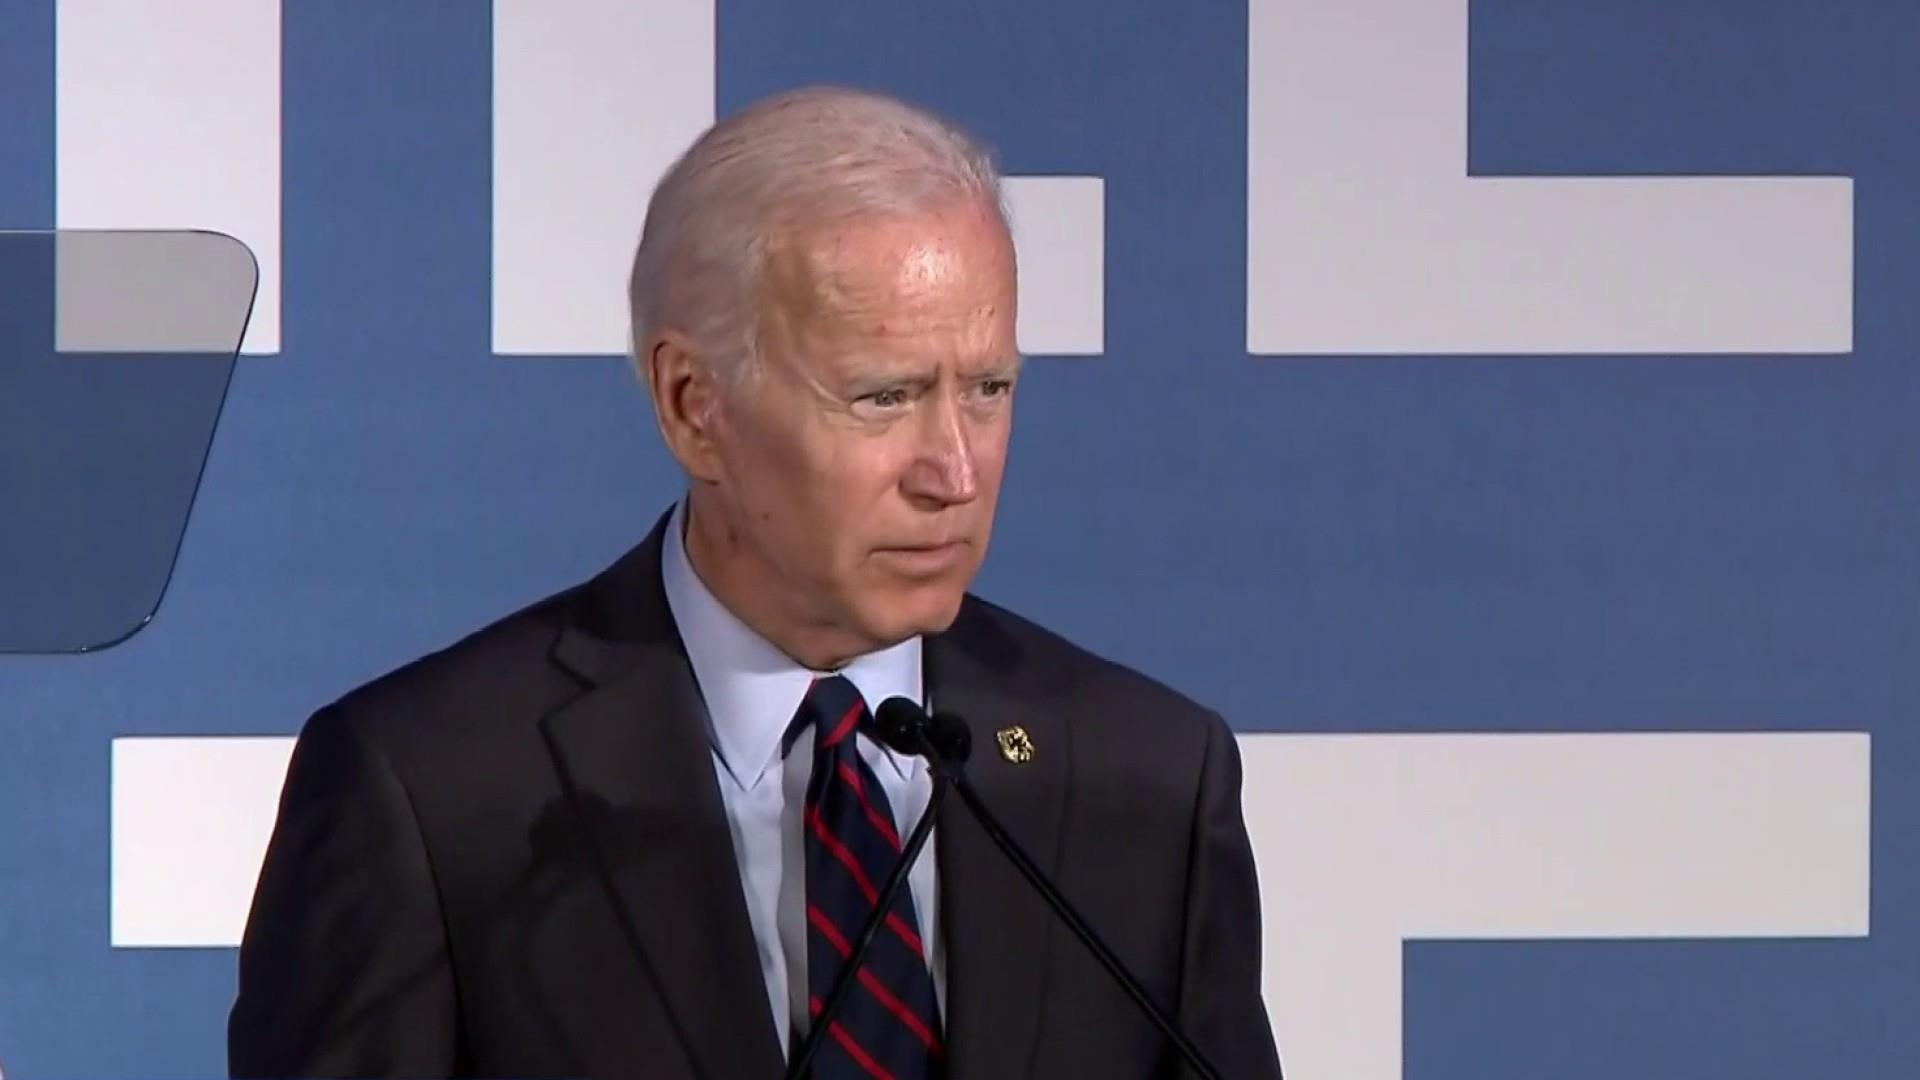 Biden Adviser: Not going to let press dictate policy rollouts